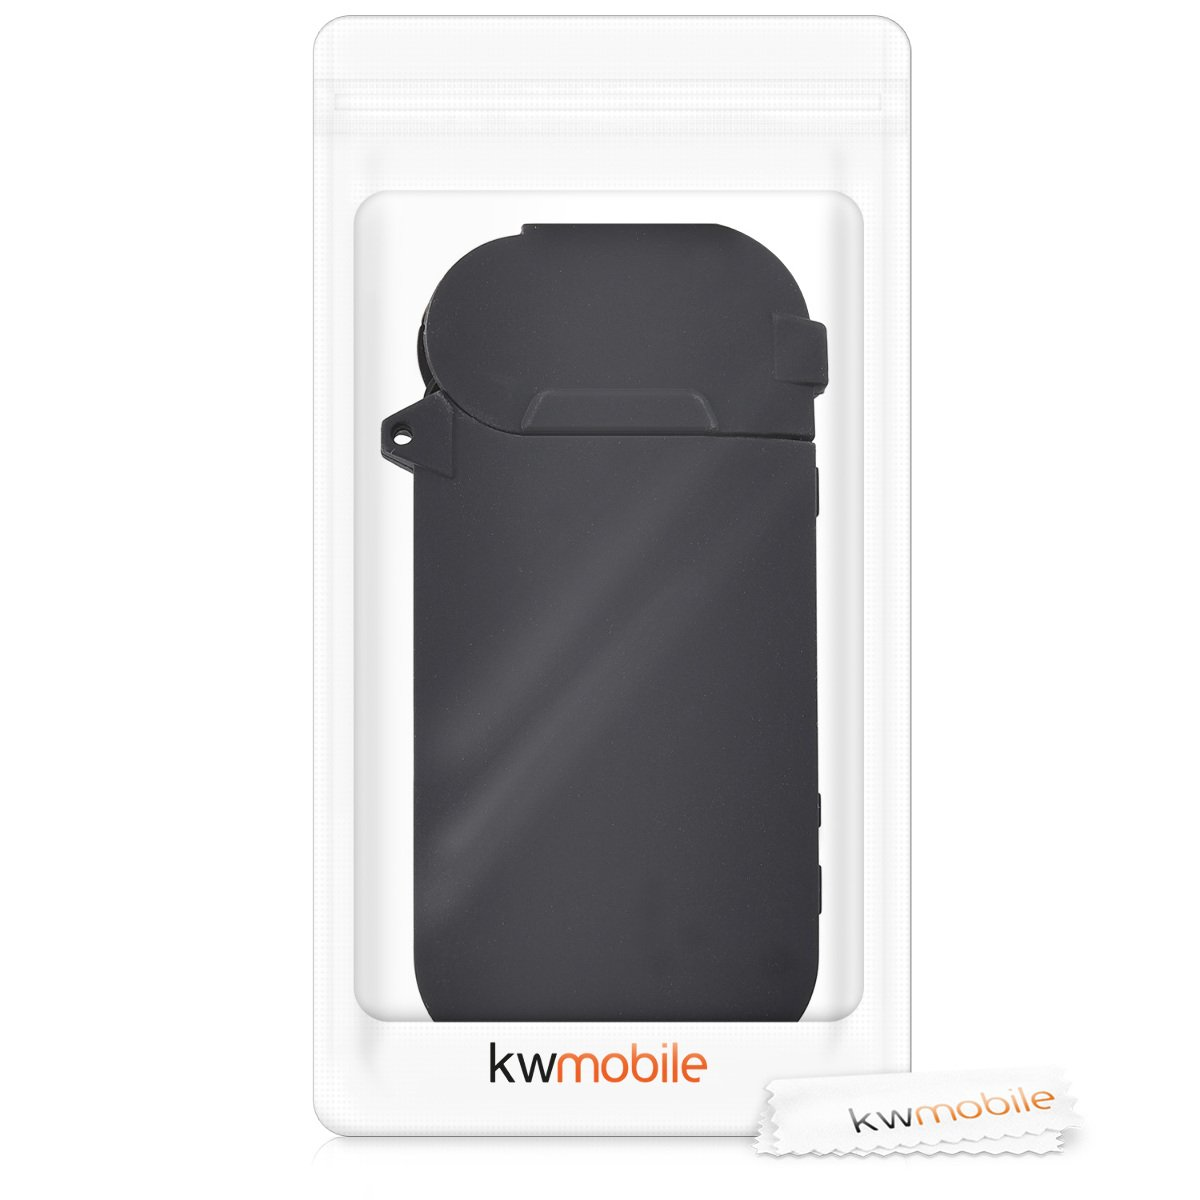 kwmobile Funda para IQOS 2.4/2.4 Plus Pocket Charger: Amazon.es: Electrónica